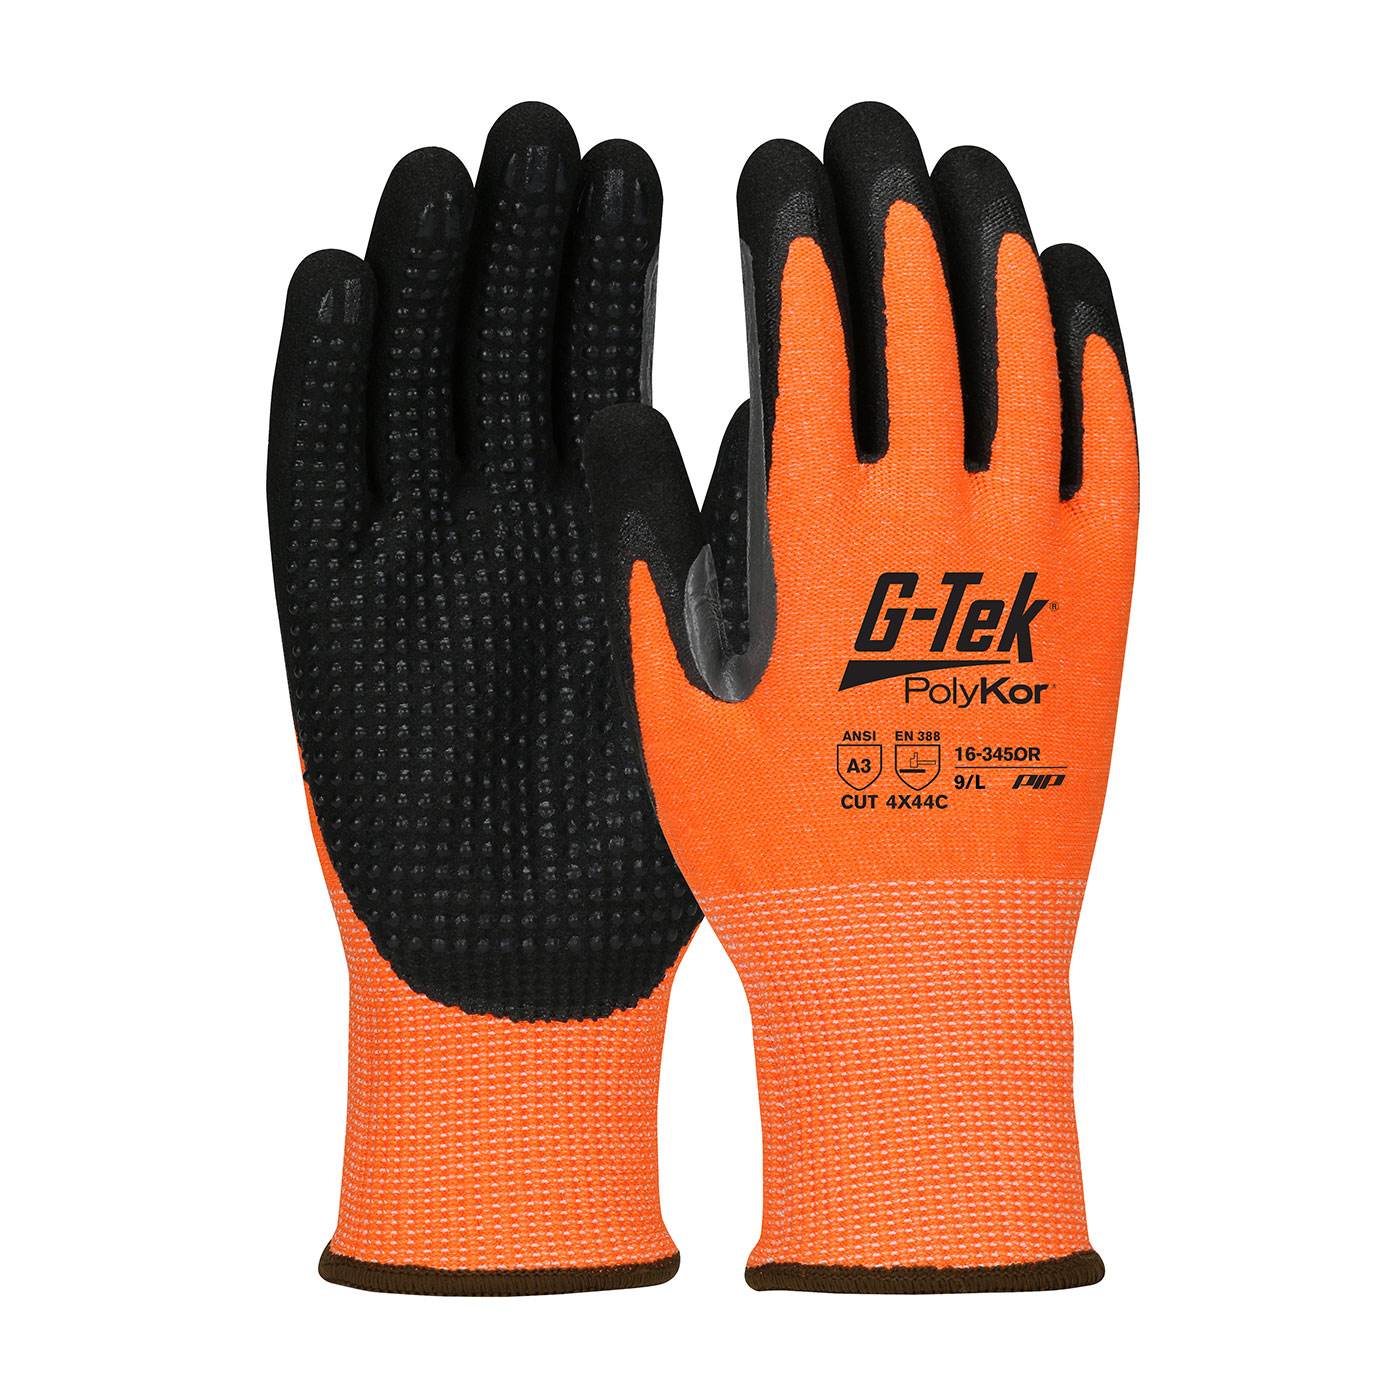 #16-345OR PIP® G-Tek® PolyKor™ Hi-Vis Double Dipped Micor Nitrile Coated Gloves